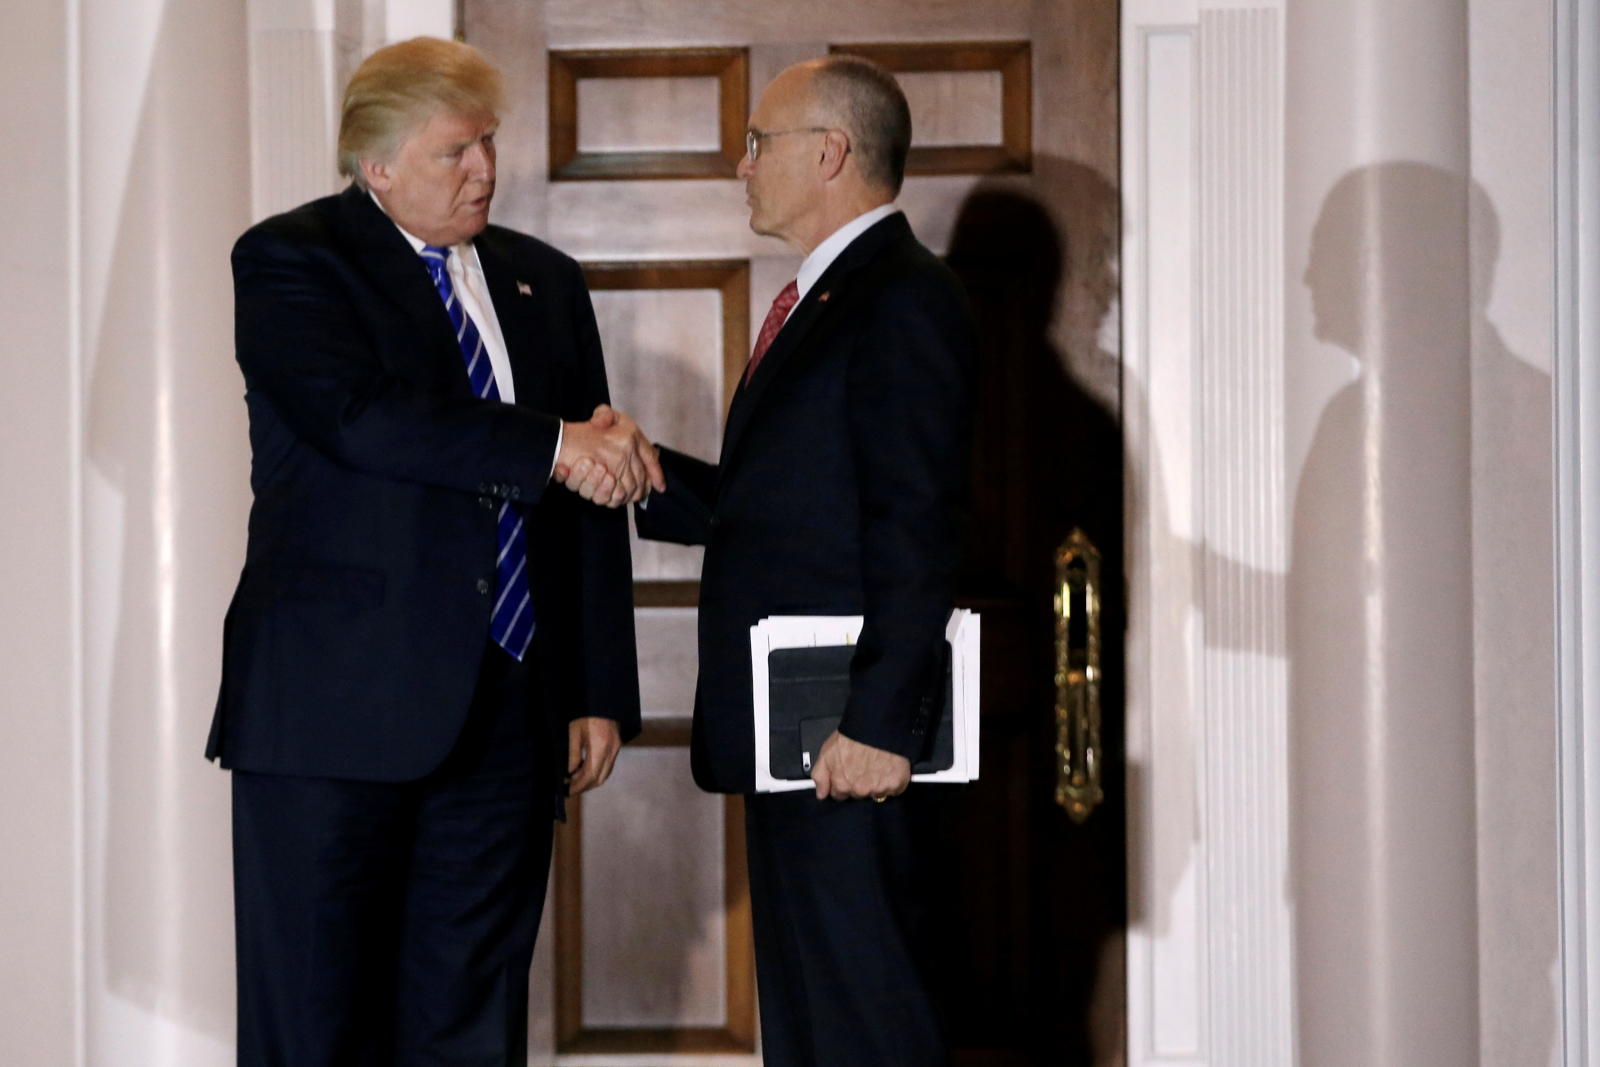 USA-TRUMP/Andy Puzder